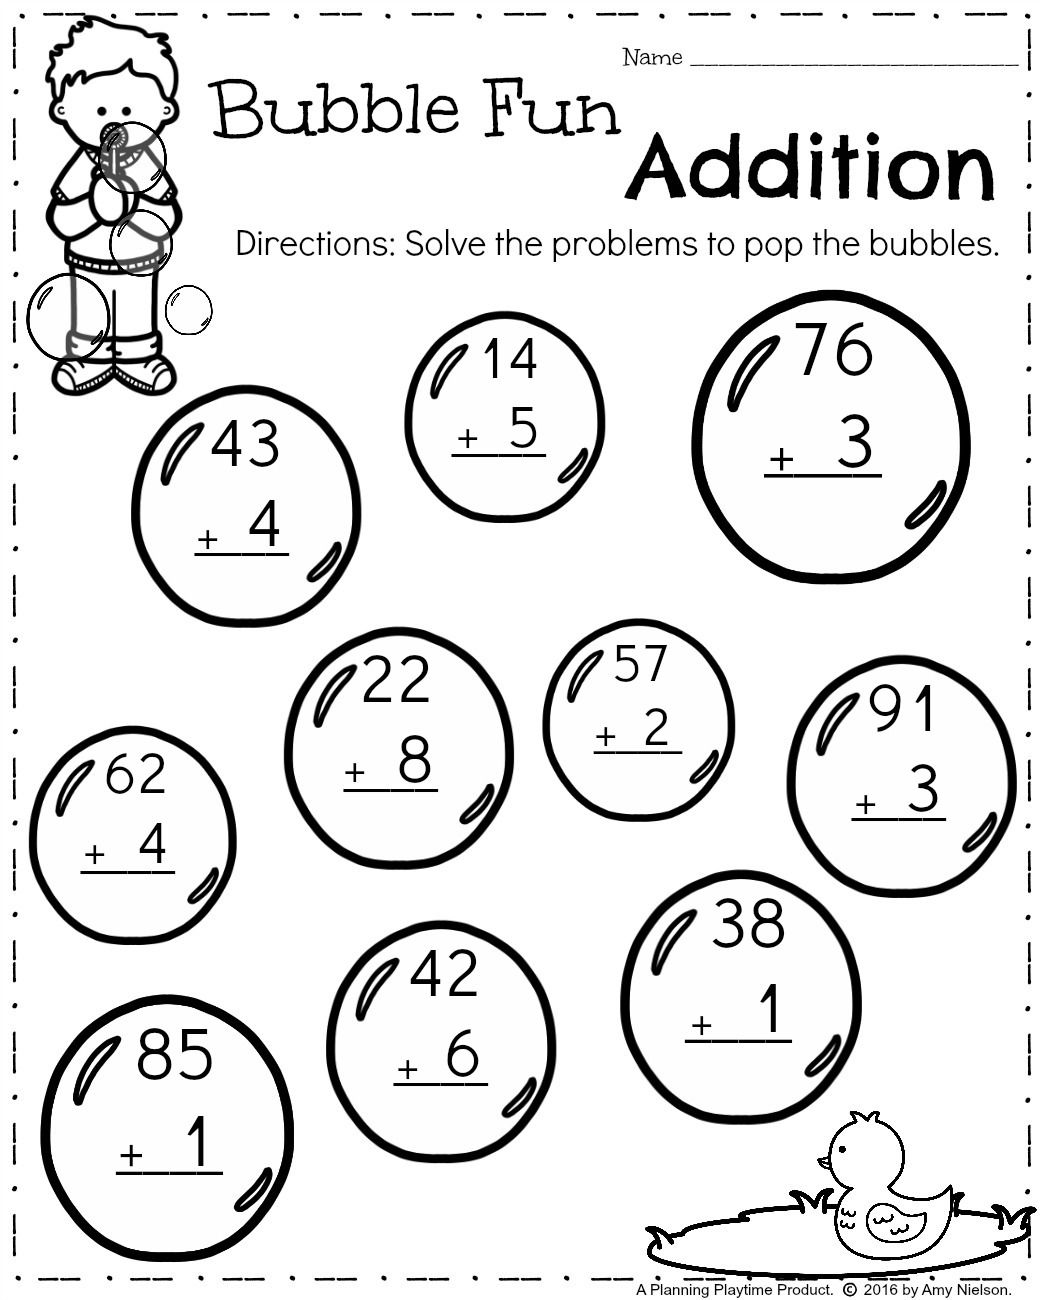 worksheet Common Core Math Worksheets 1st Grade first grade worksheets for spring math and addition 2 digits plus 1 digit